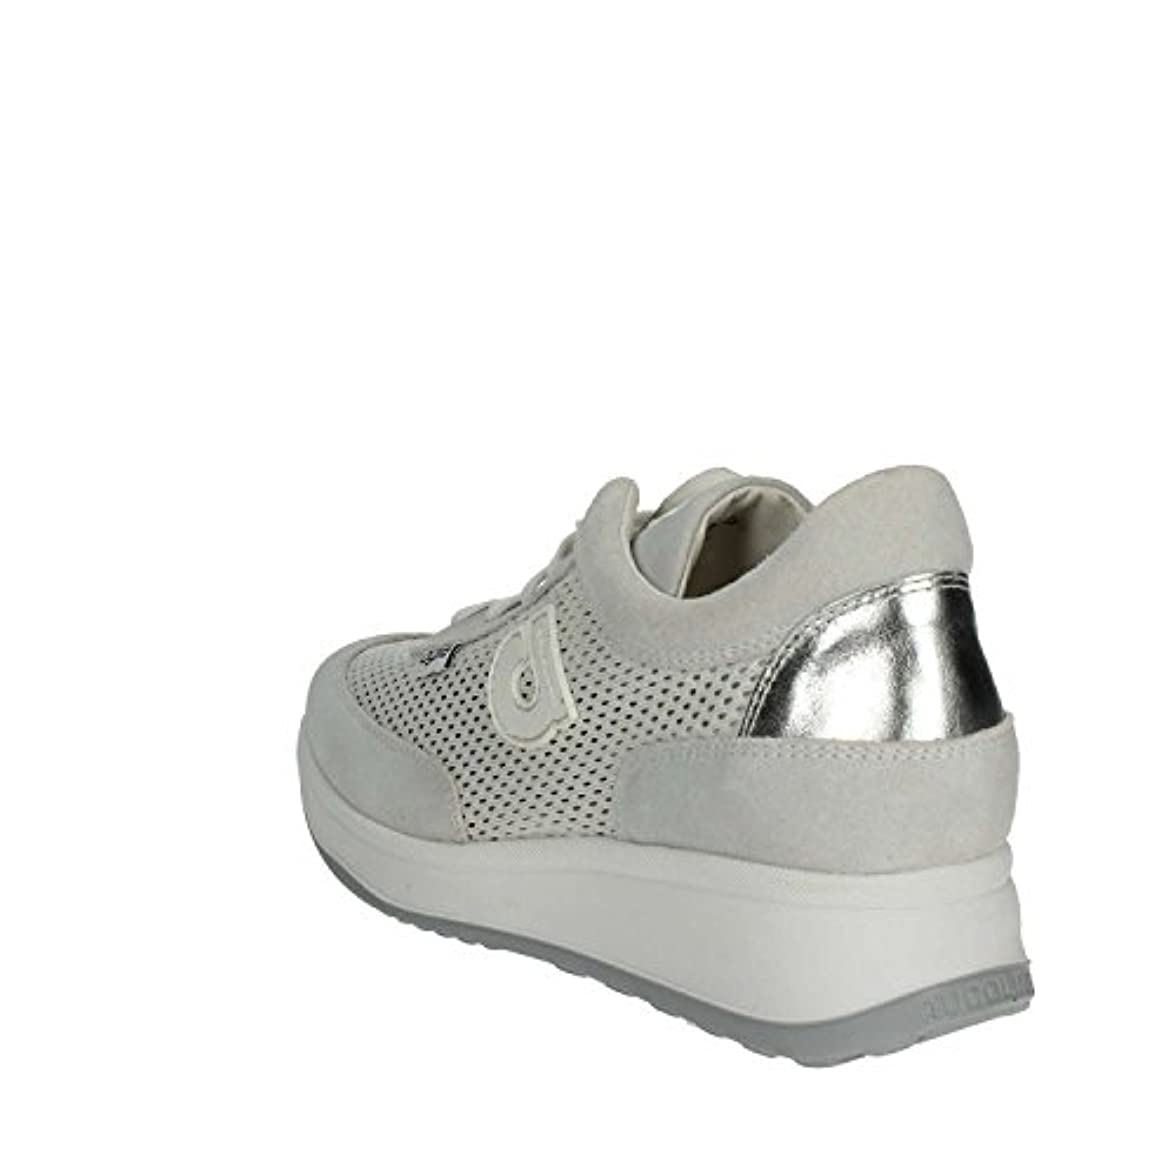 By Bianco 1304 39 Sneakers Rucoline Donna Agile